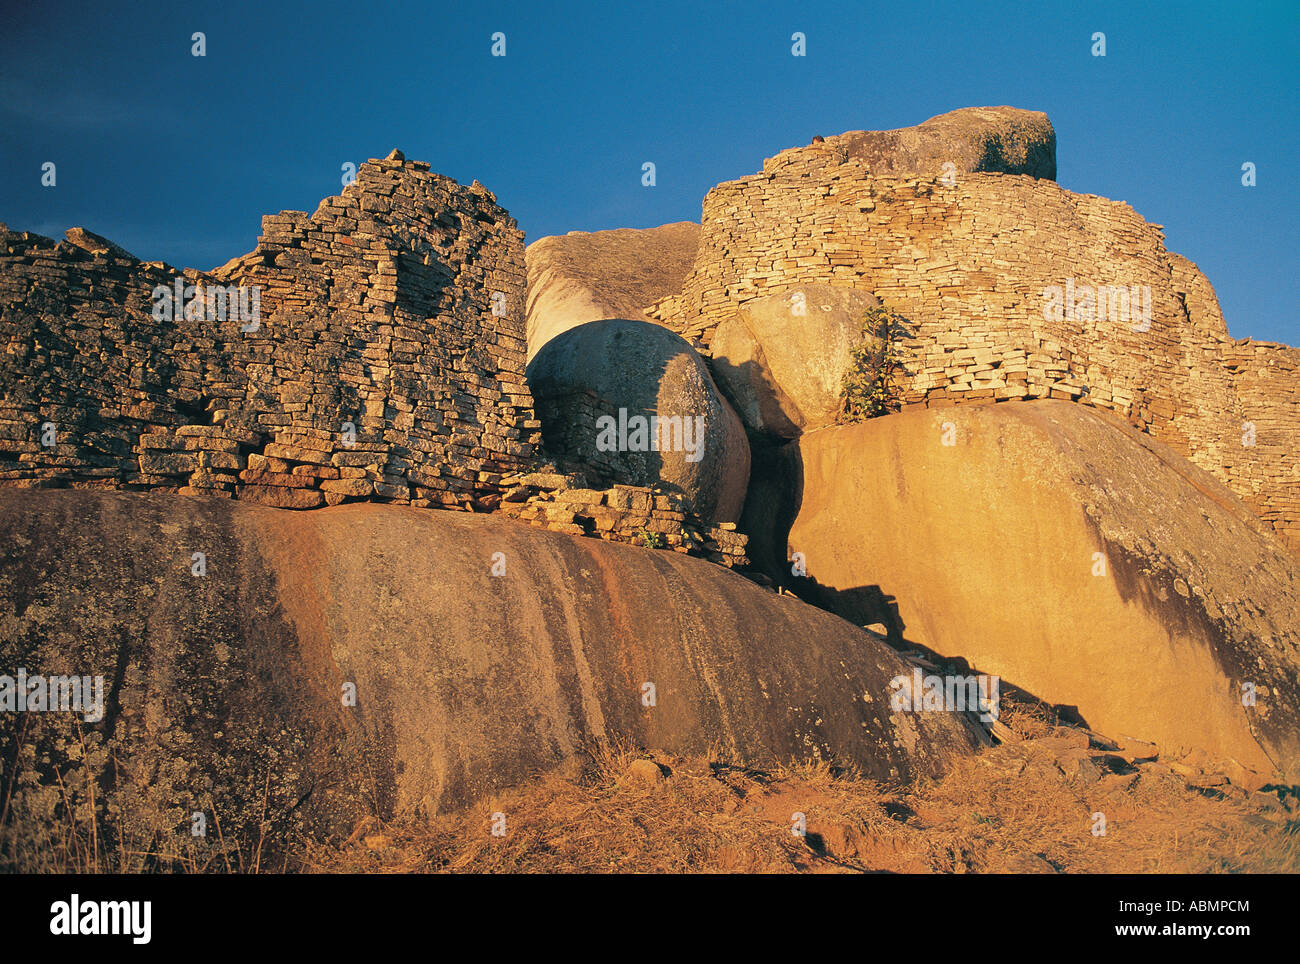 View of Hill Complex formerly called Acropolis Great Zimbabwe Ruins Zimbabwe Stock Photo